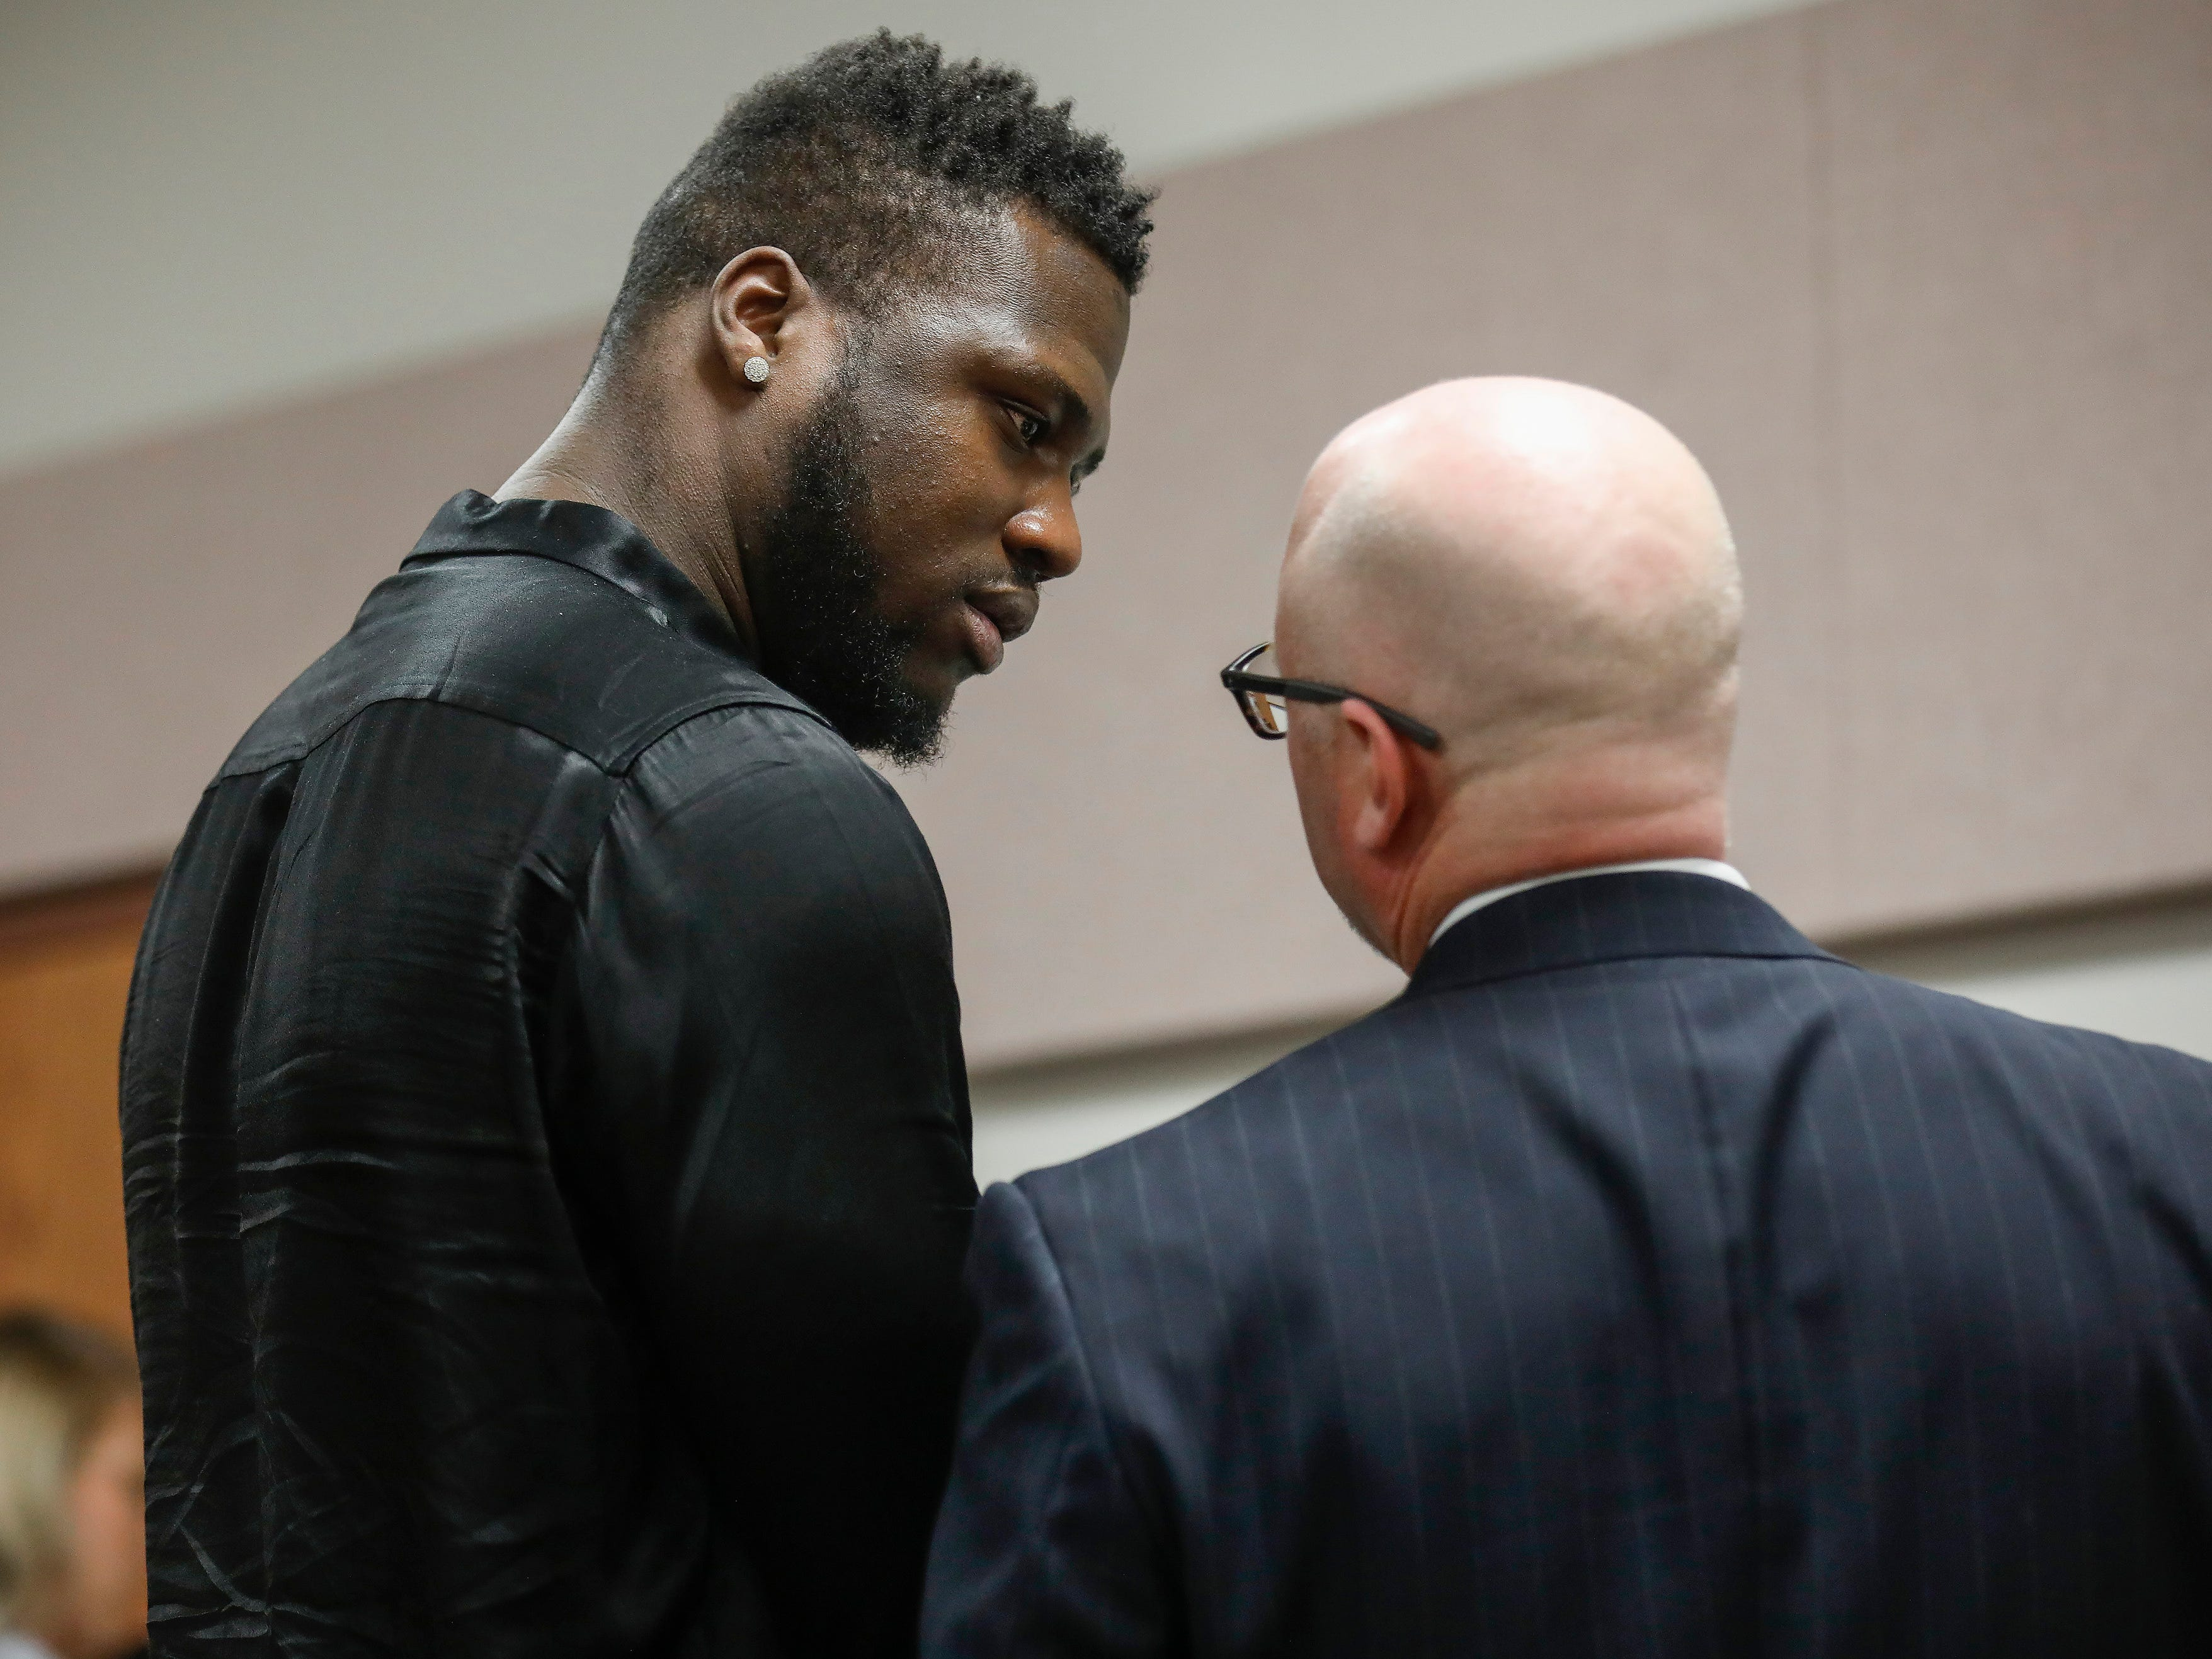 Dorial Green-Beckham's lawyer Tyson Martin, right, speaks to him after he was sentenced to 90 days in jail for probation violation in a prior DWI case on Friday, March 8, 2019.